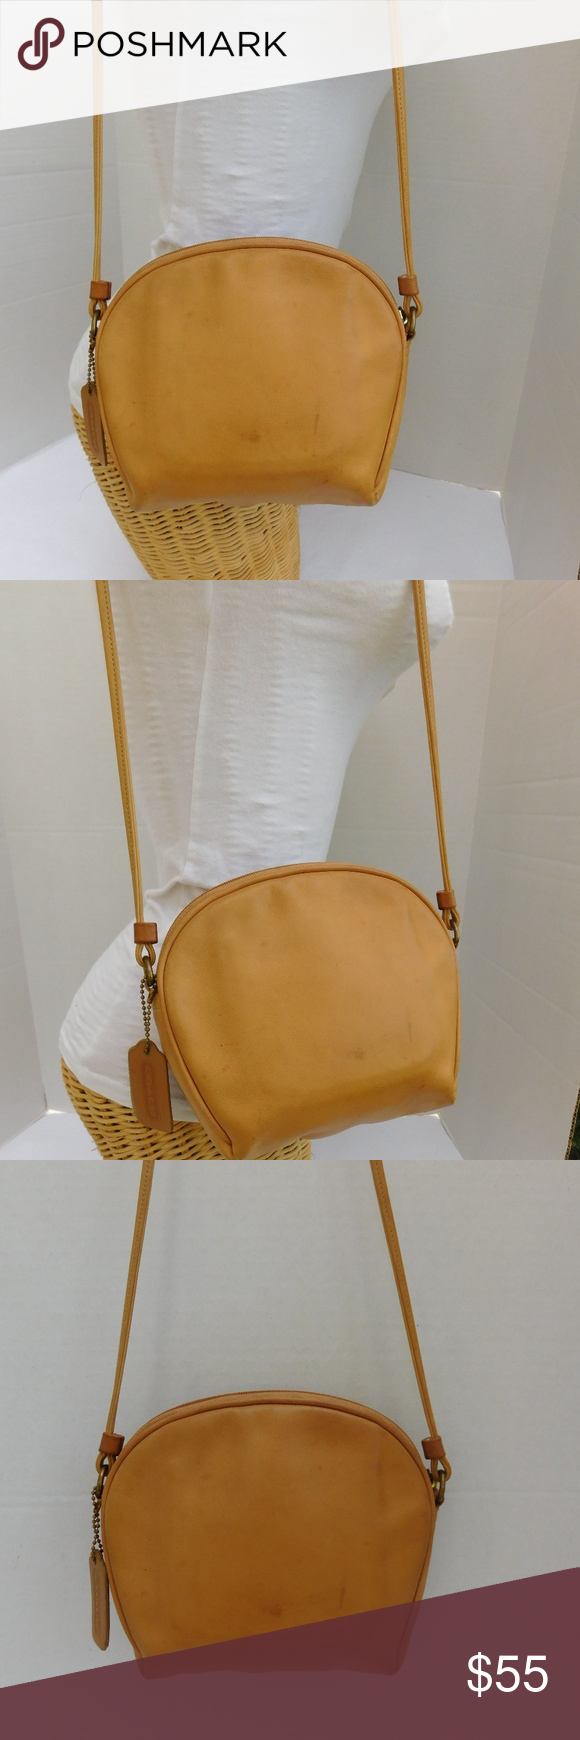 SOLDVintage Coach Small Tan Leather Shoulder Bag